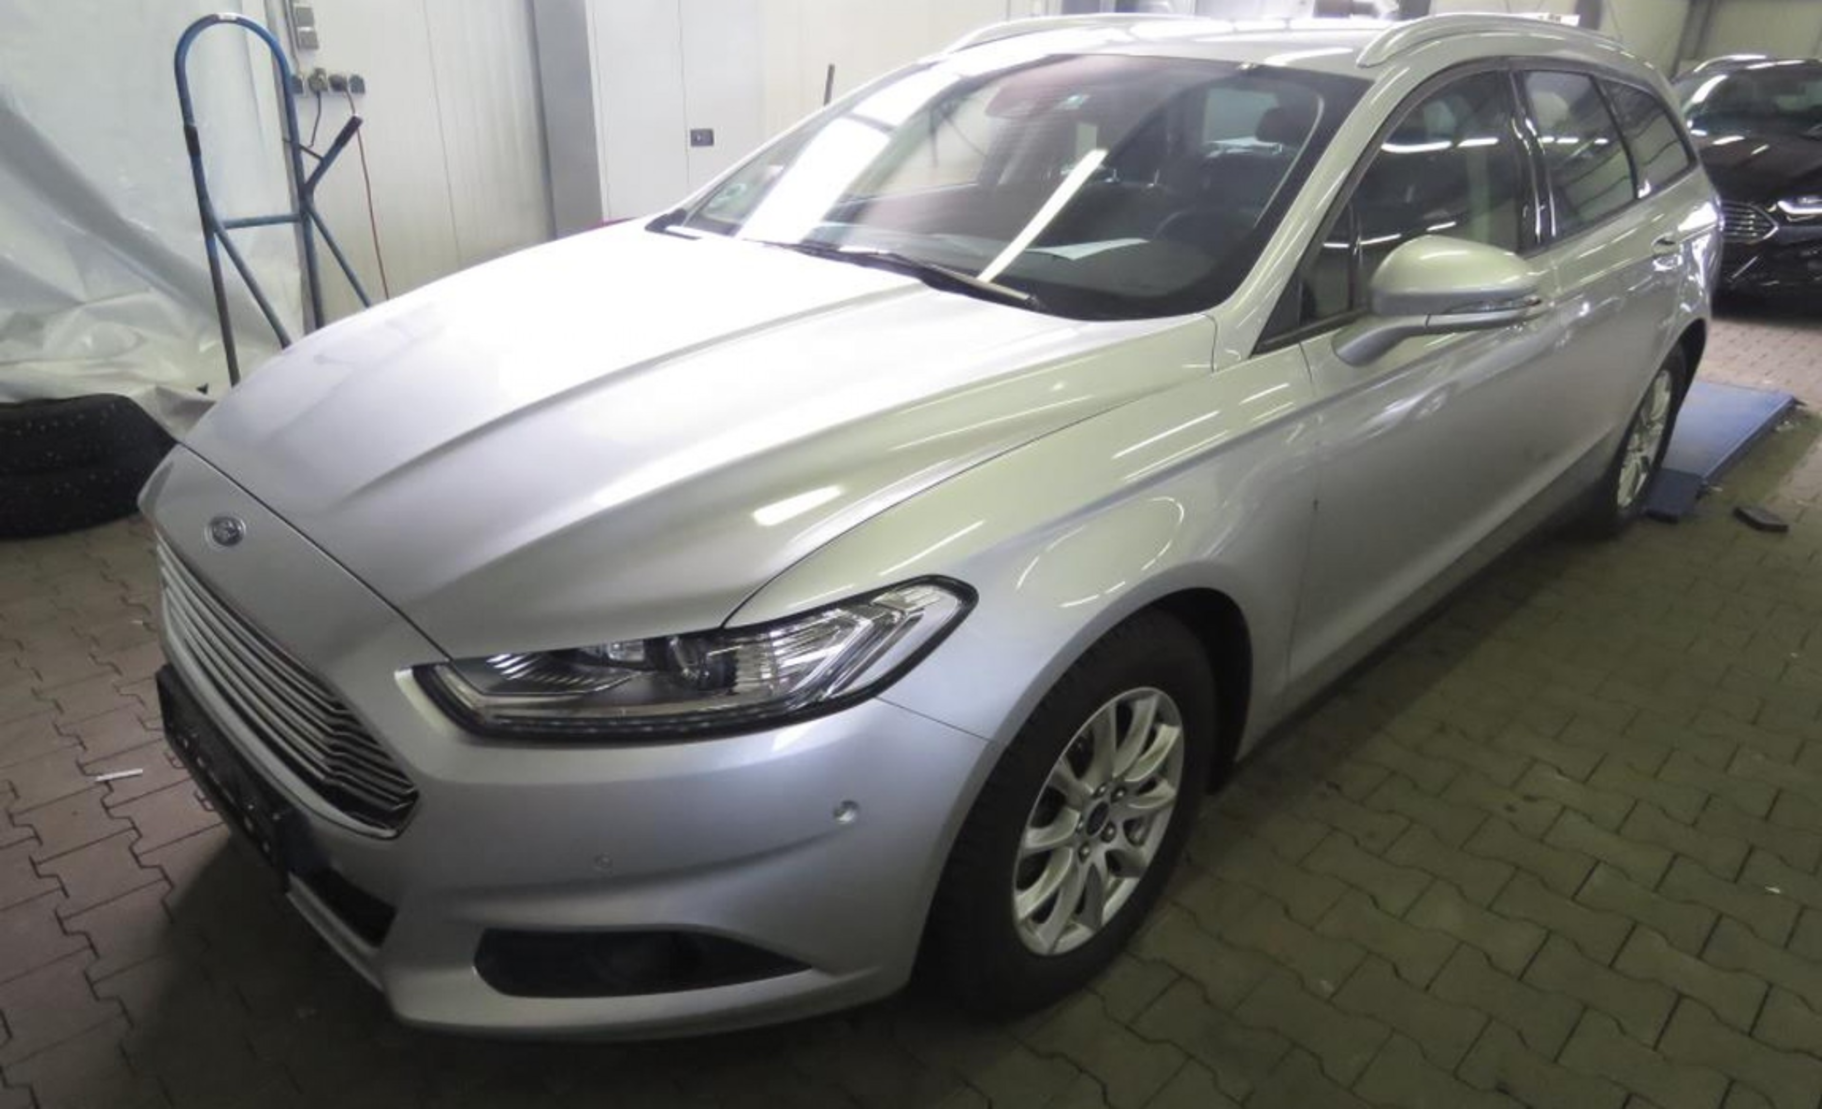 Ford Mondeo Turnier 2.0 TDCi Start-Stop Aut. Business Edition (688942) detail1